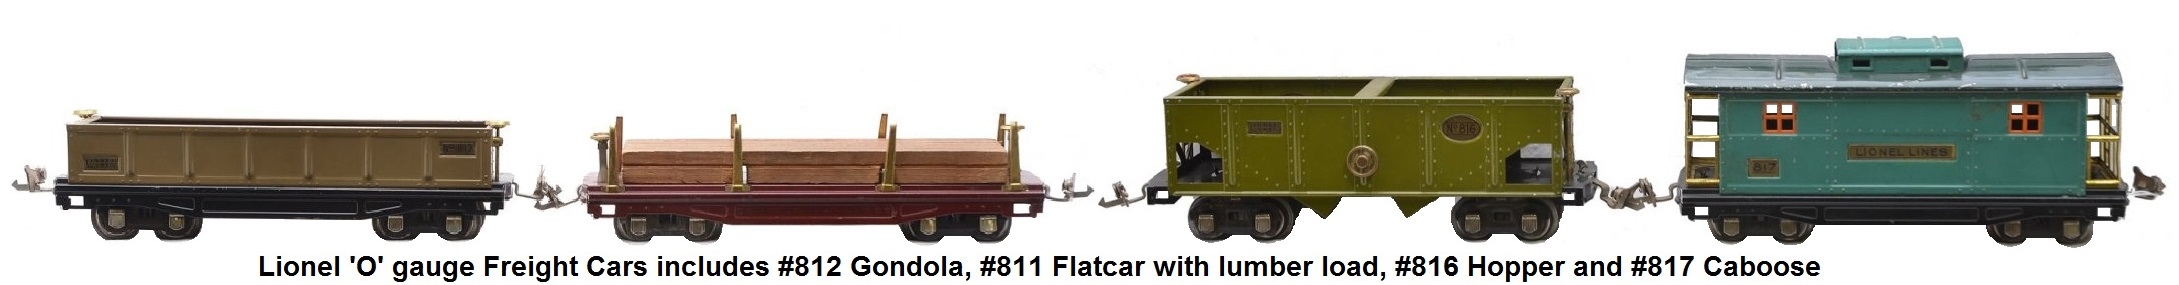 Lionel 'O' gauge freight cars with brass trim and nickel journals including #811 maroon flatcar with lumber load, #812 Mojave gondola, #816 olive green hopper and #817 two-tone green caboose